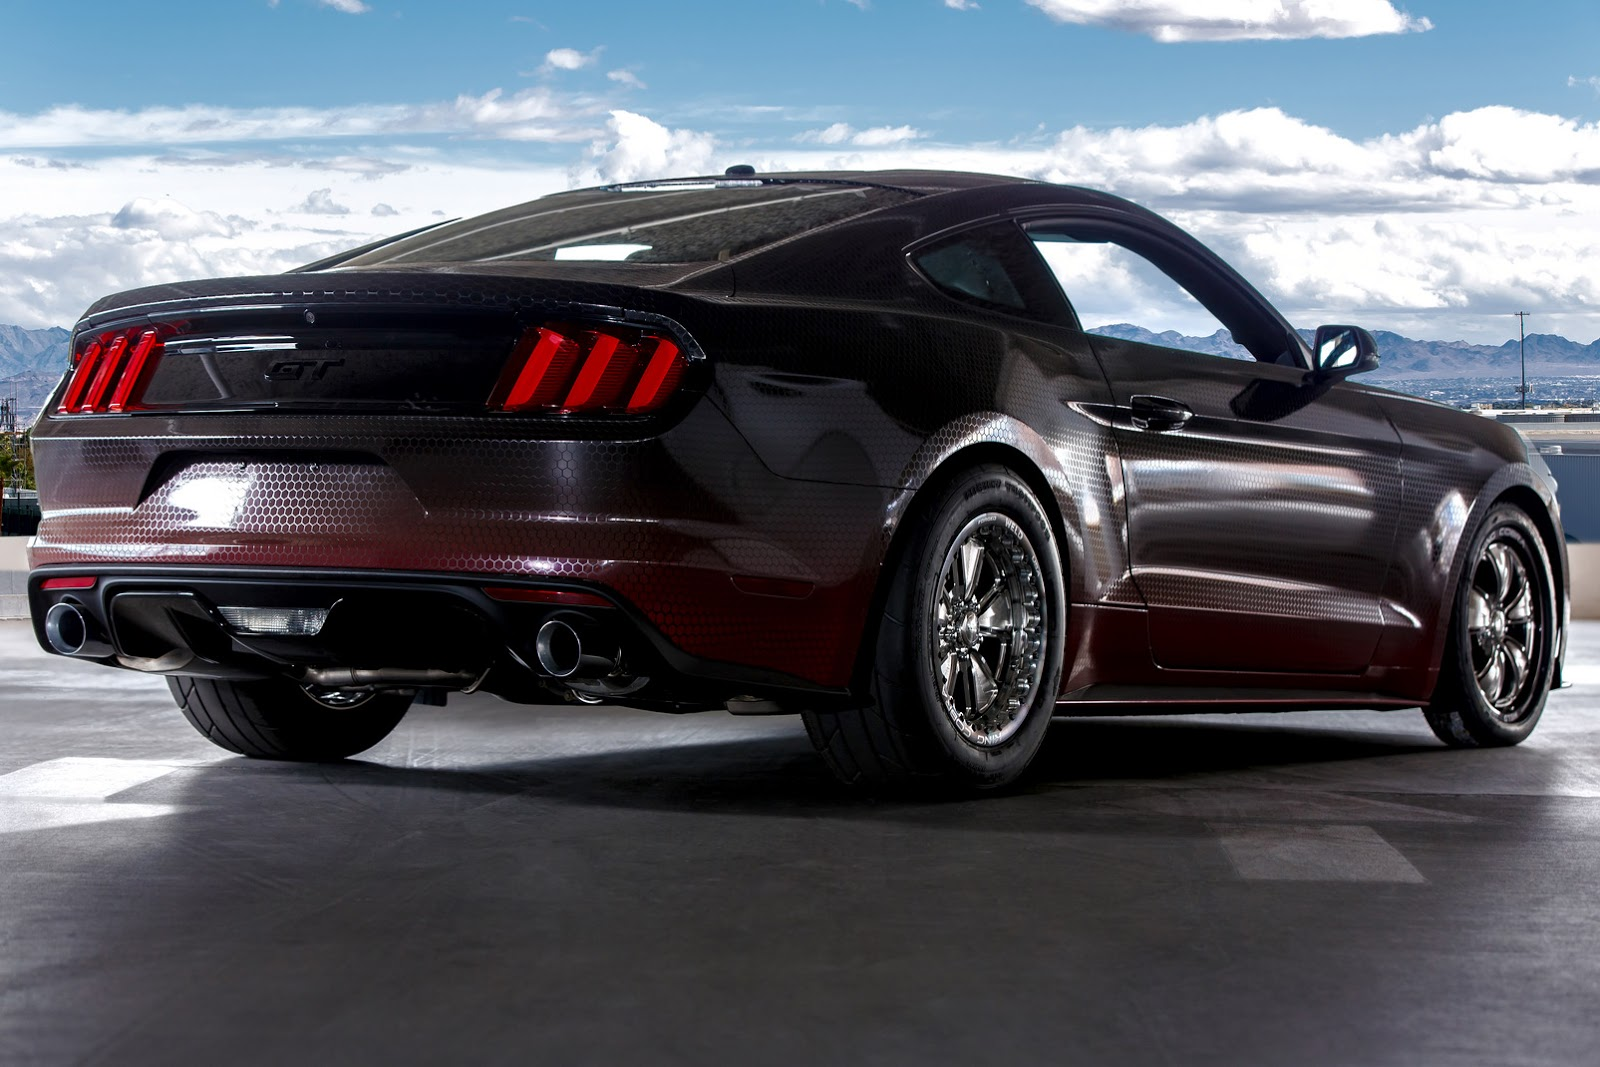 official 2015 ford mustang king cobra concept gtspirit. Black Bedroom Furniture Sets. Home Design Ideas